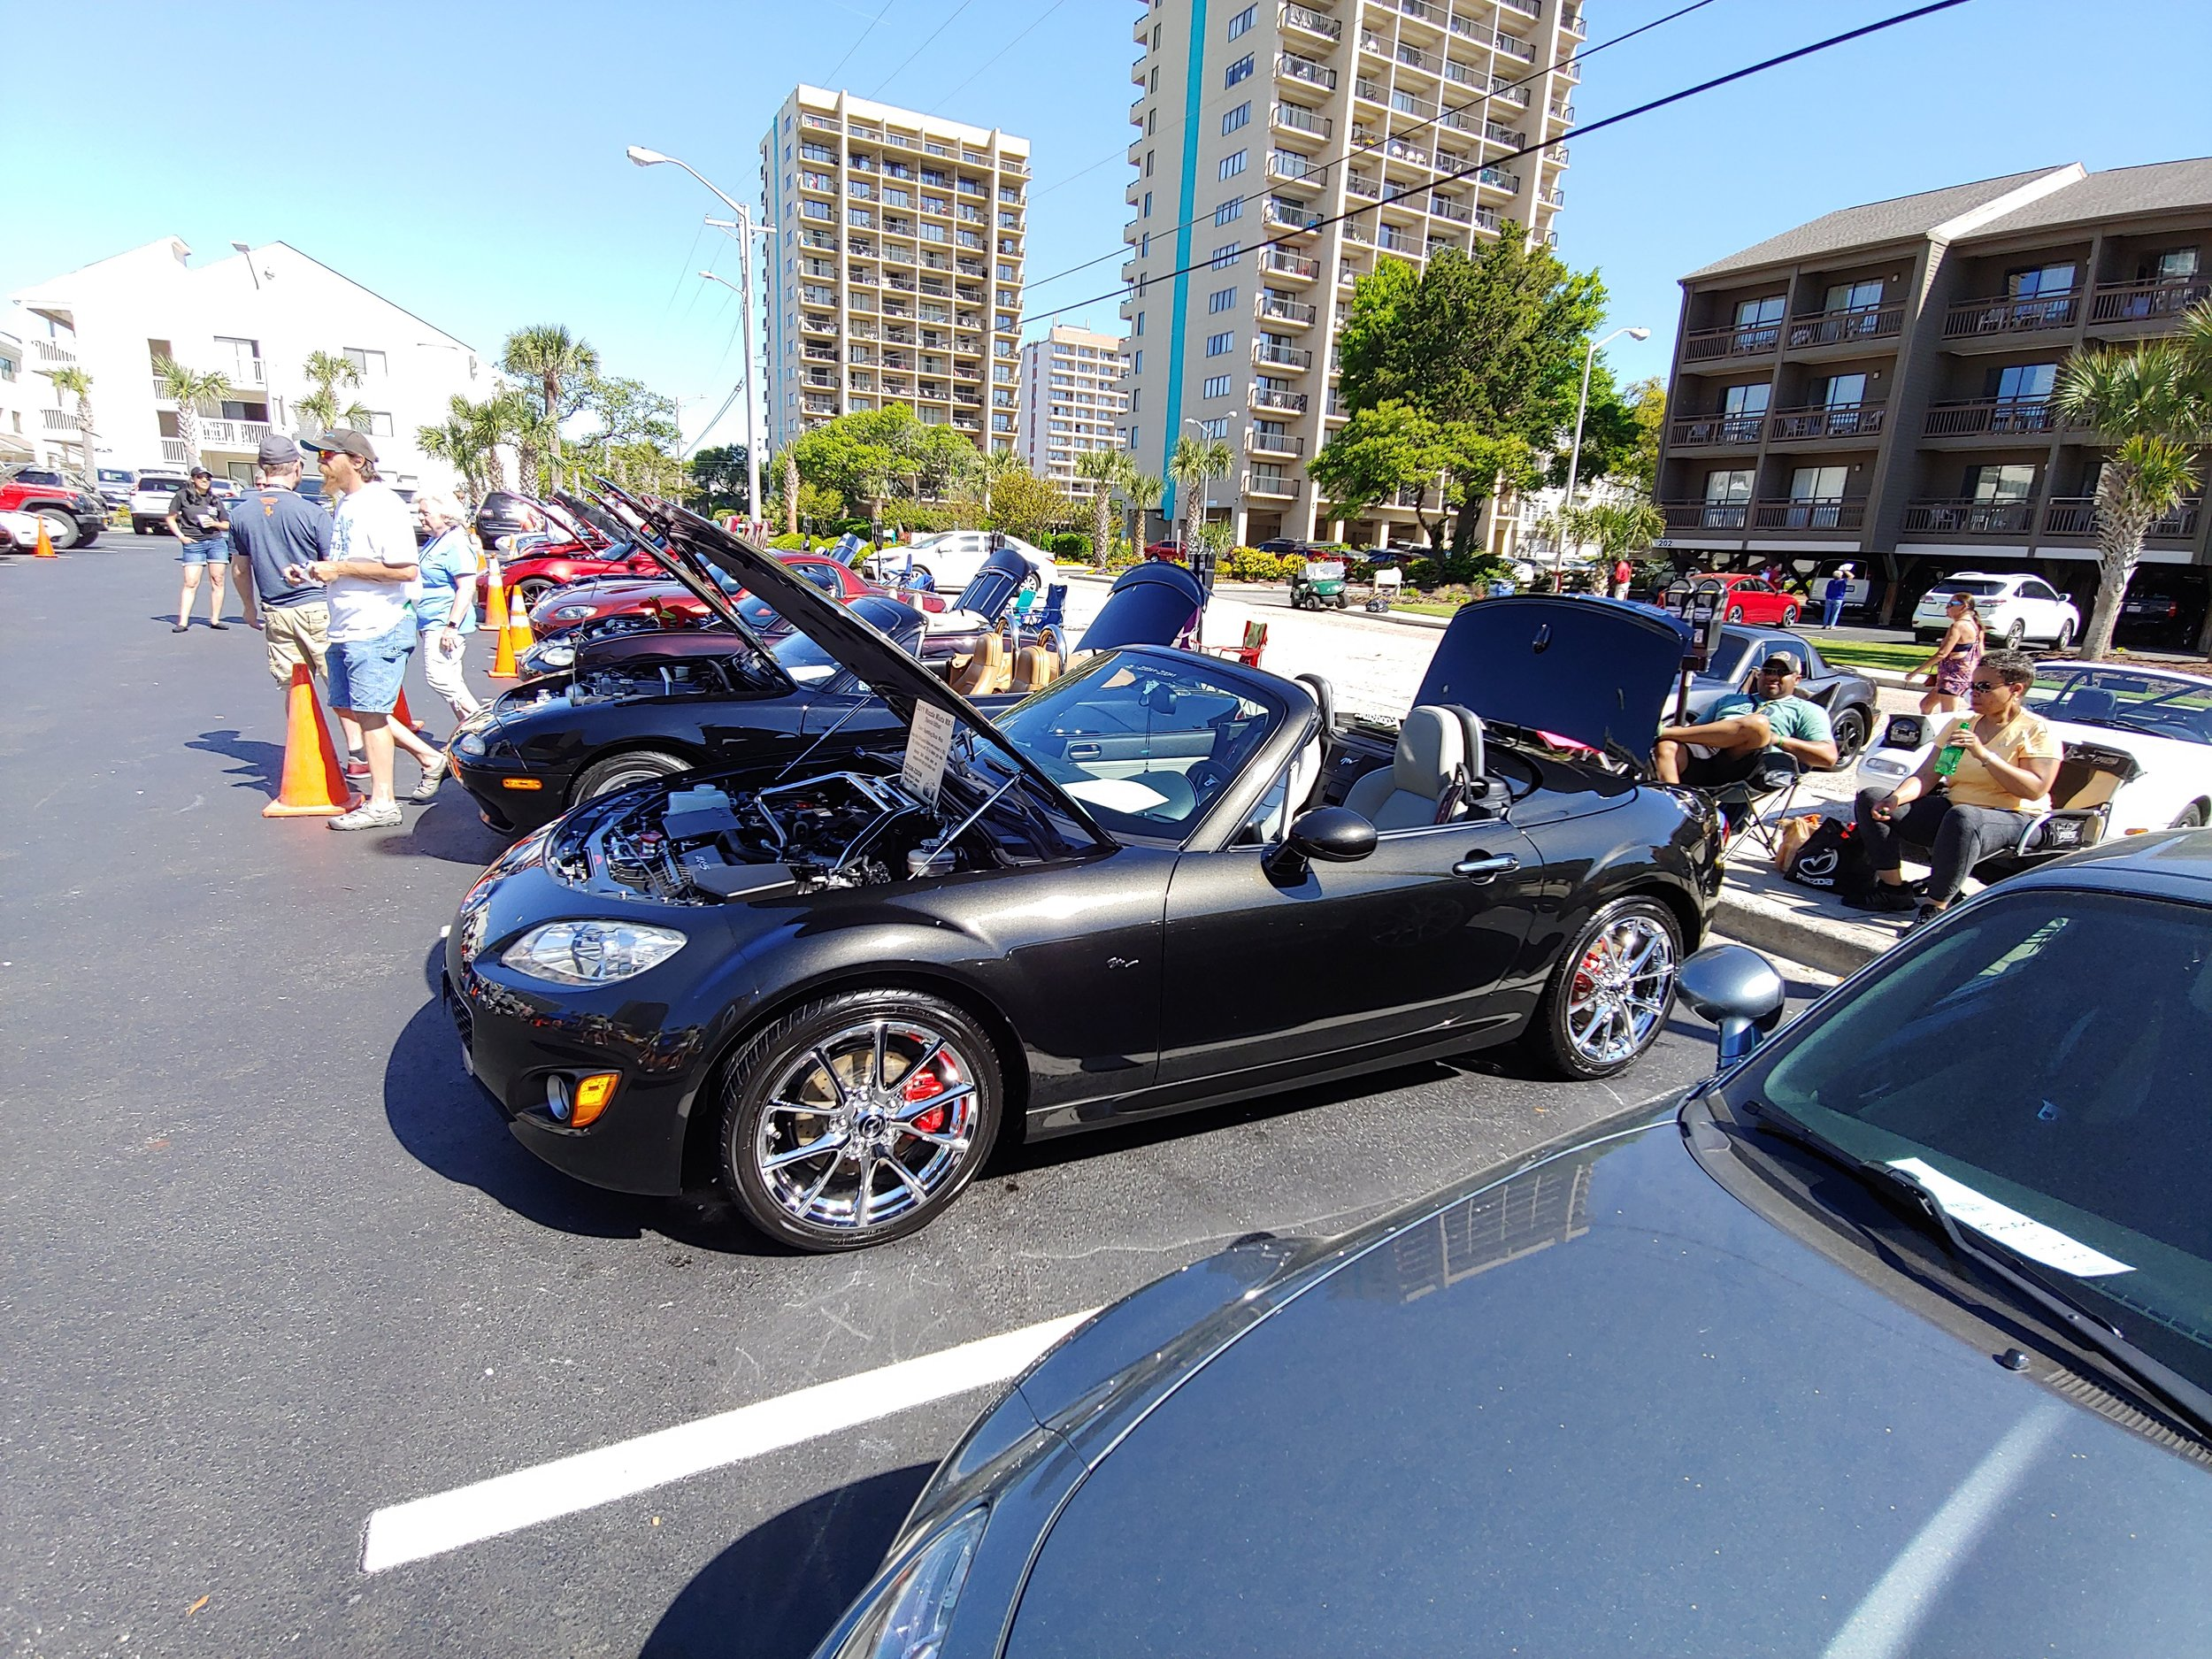 Tops down, and hood lifted up. So many great cars to enjoy. This one won Best NC and Best Overall. The car will be displayed on next years T-shirt, I am told.